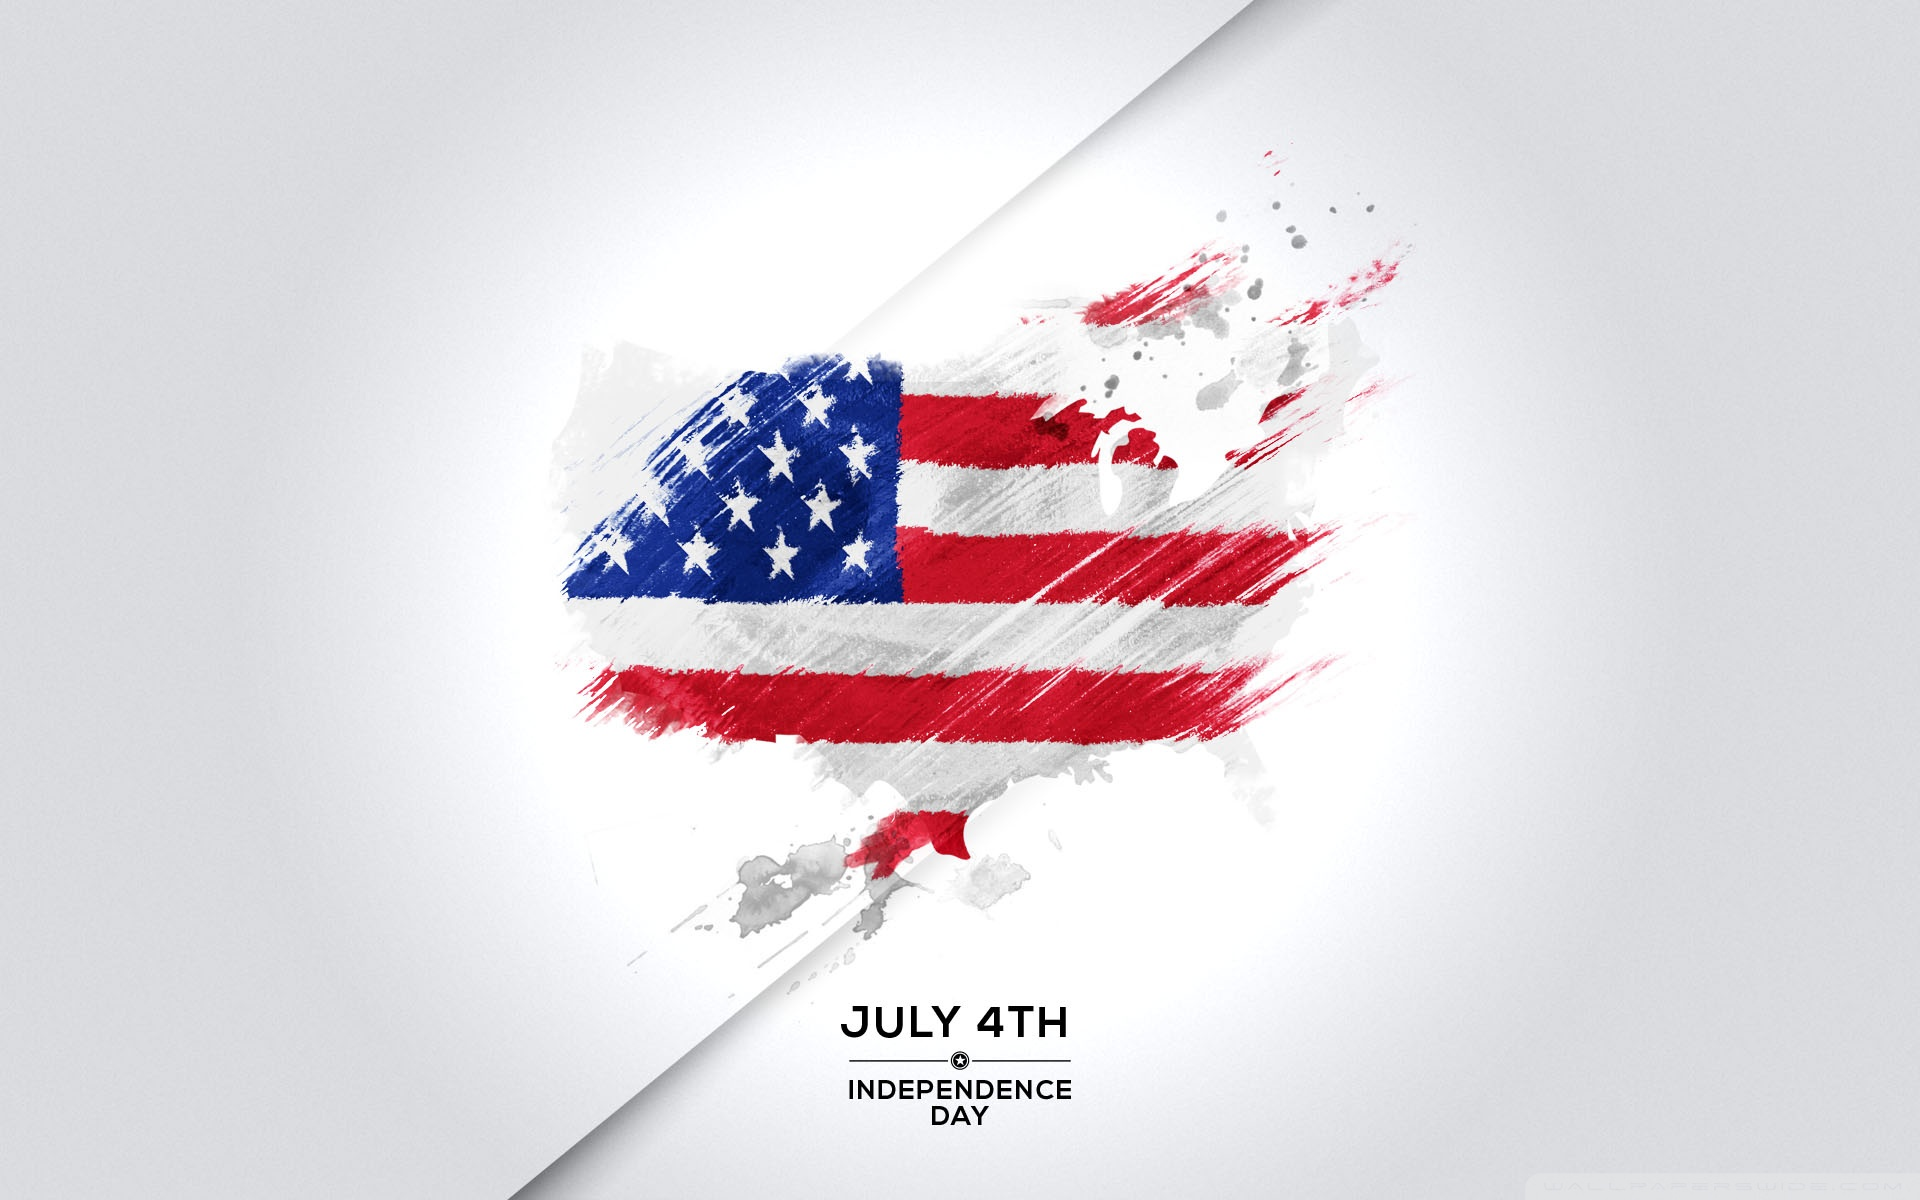 2 INDEPENDENCE DAY 4 JULY CityBest 1920x1200